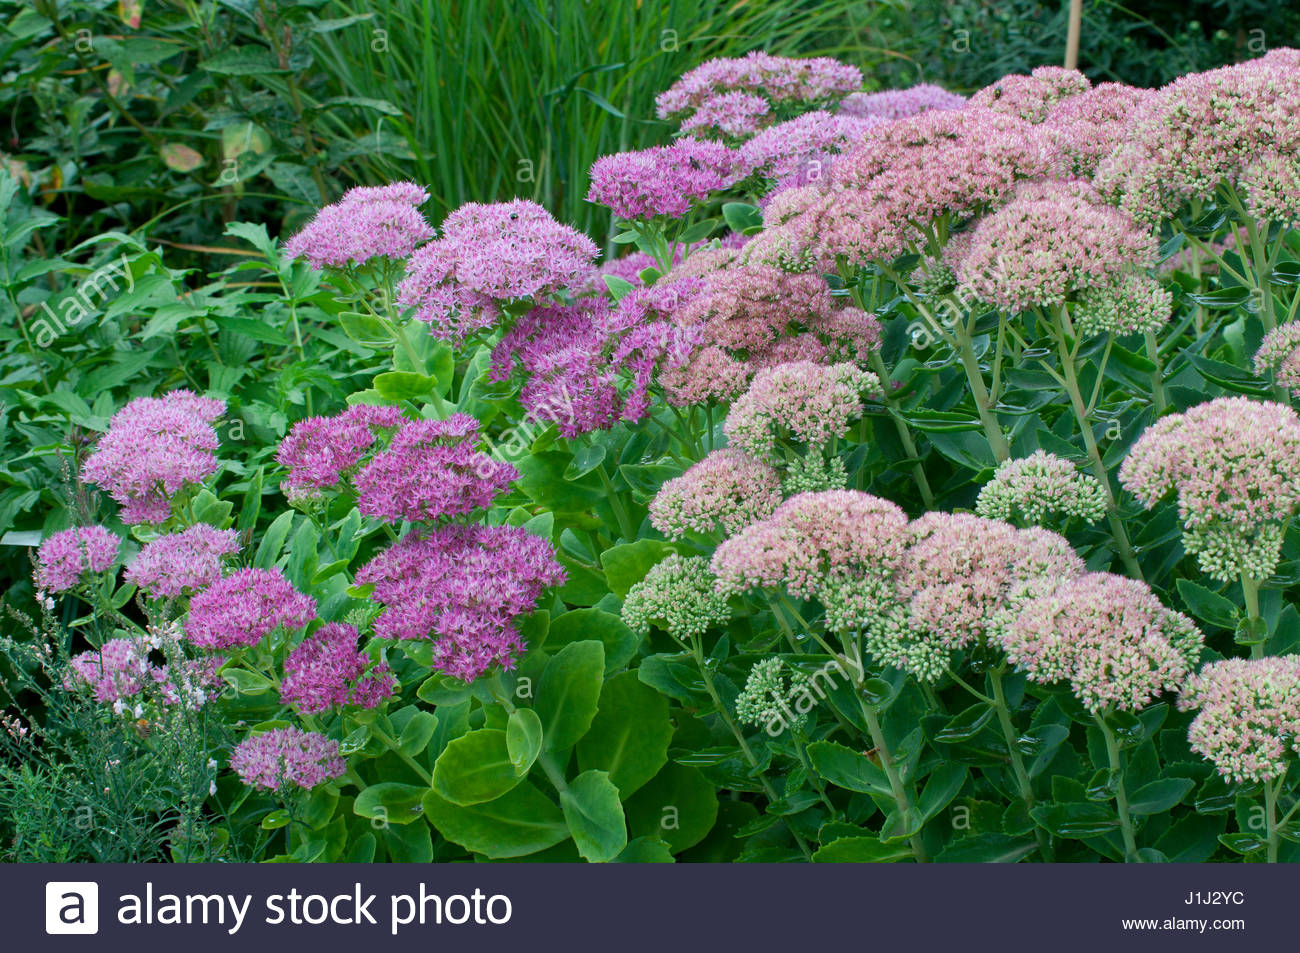 sedum spectabile x telephium 39 brilliant 39 orpin plante vivace stock photo 138695072 alamy. Black Bedroom Furniture Sets. Home Design Ideas